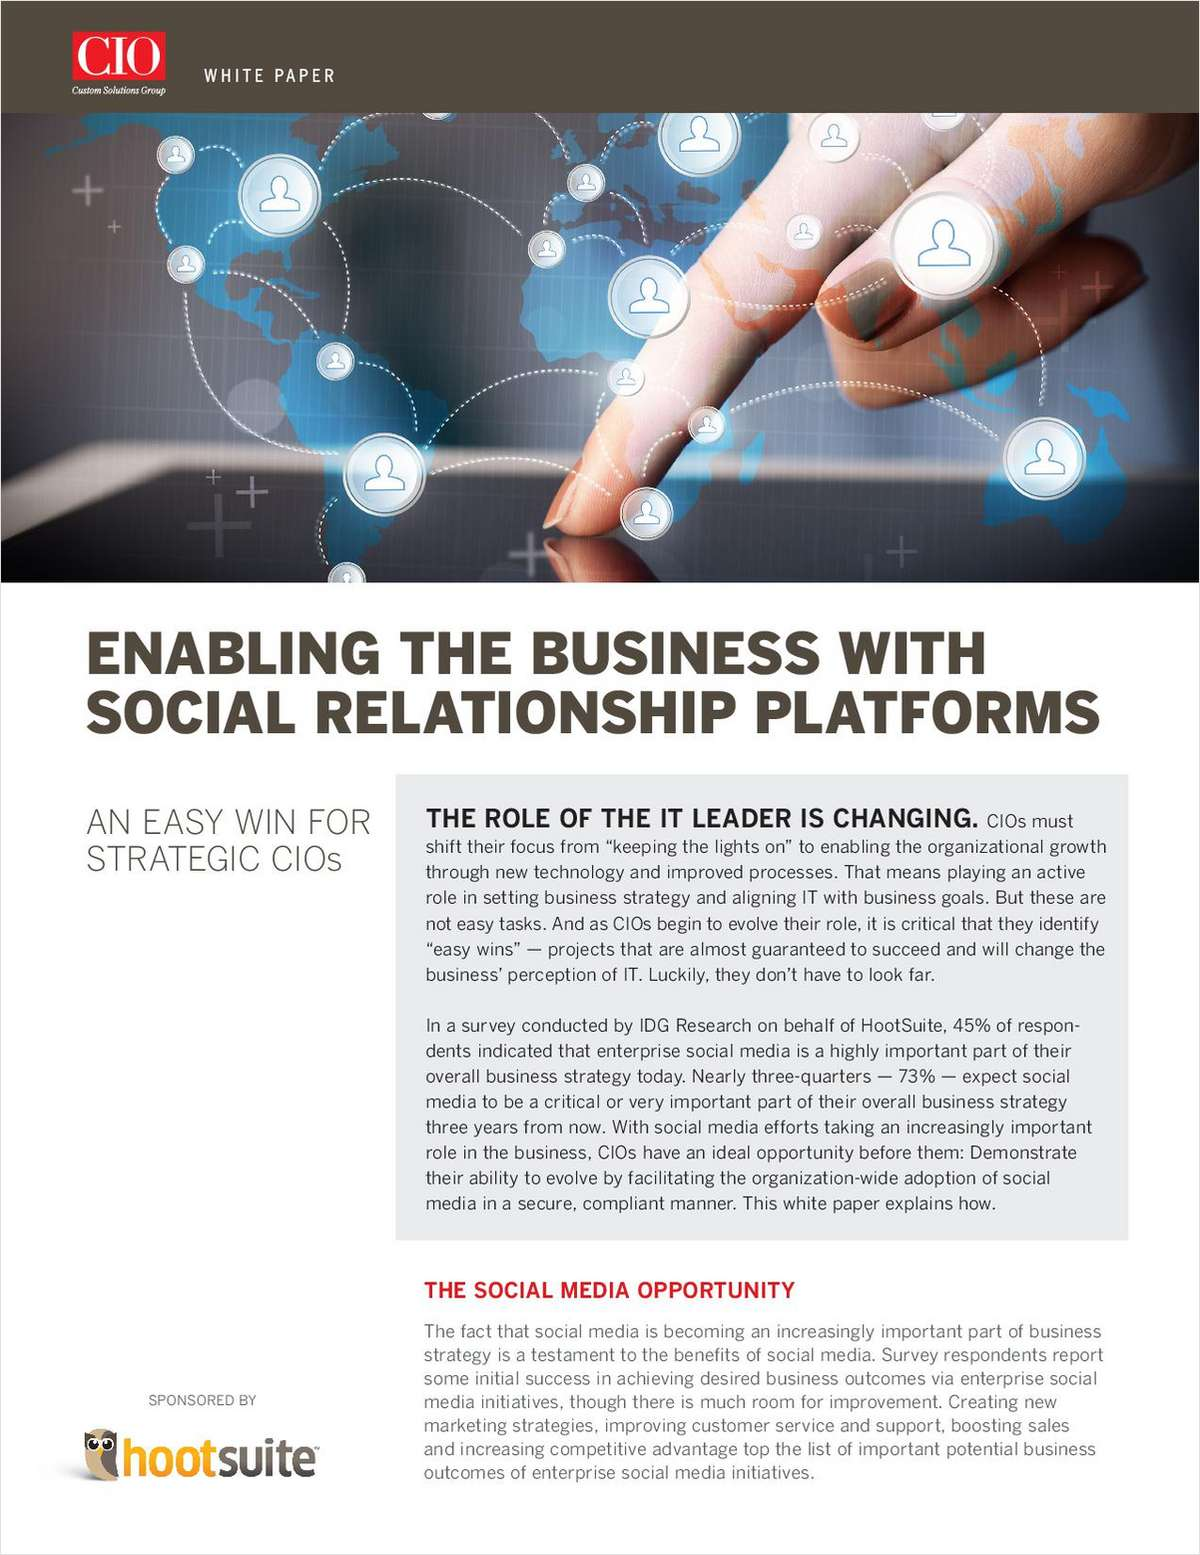 Enabling the Business with Social Relationship Platforms